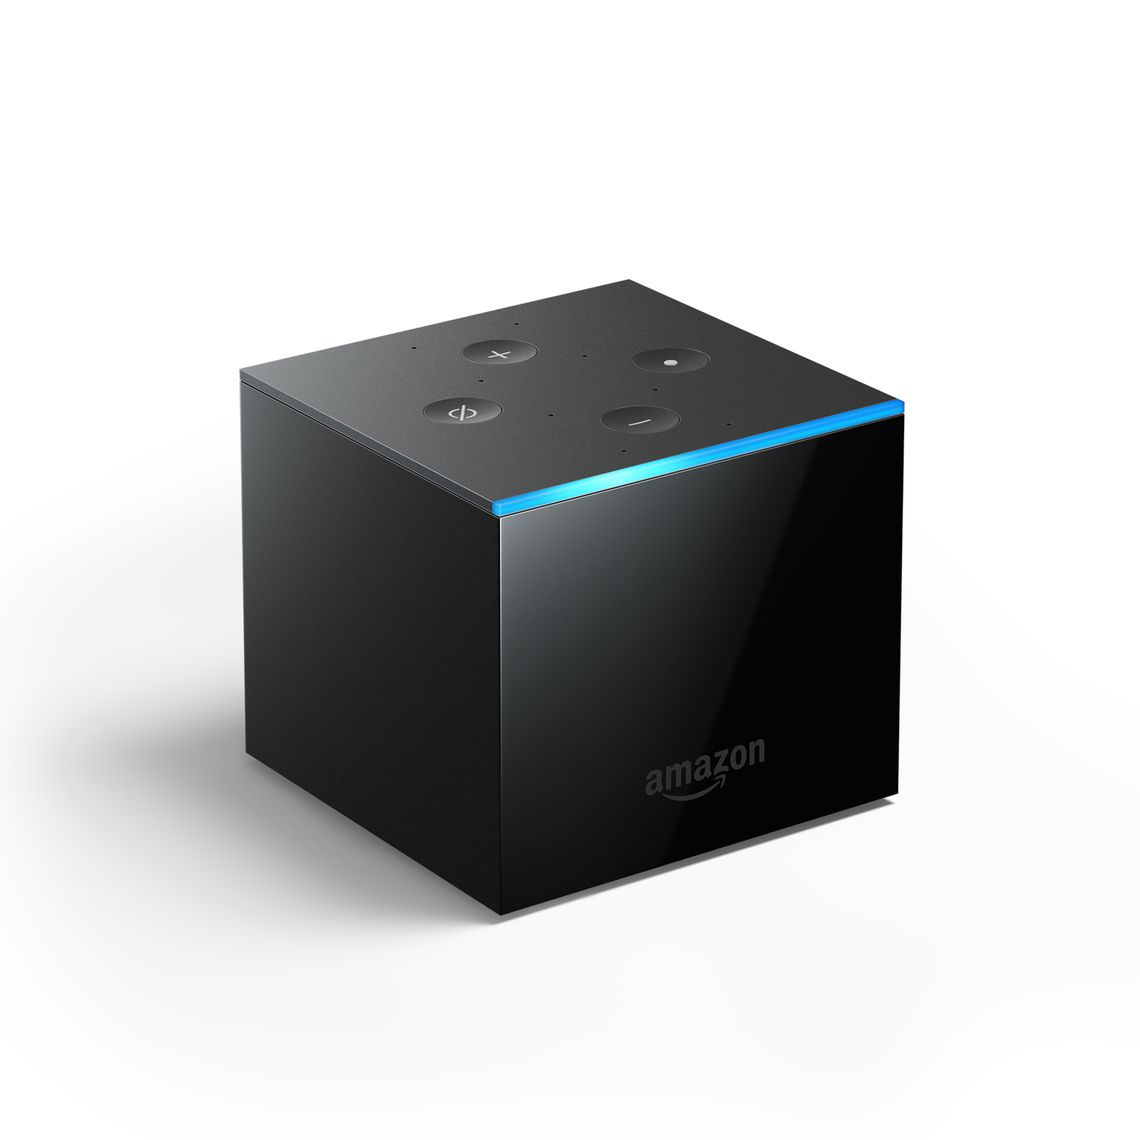 Amazon Fire TV Cube